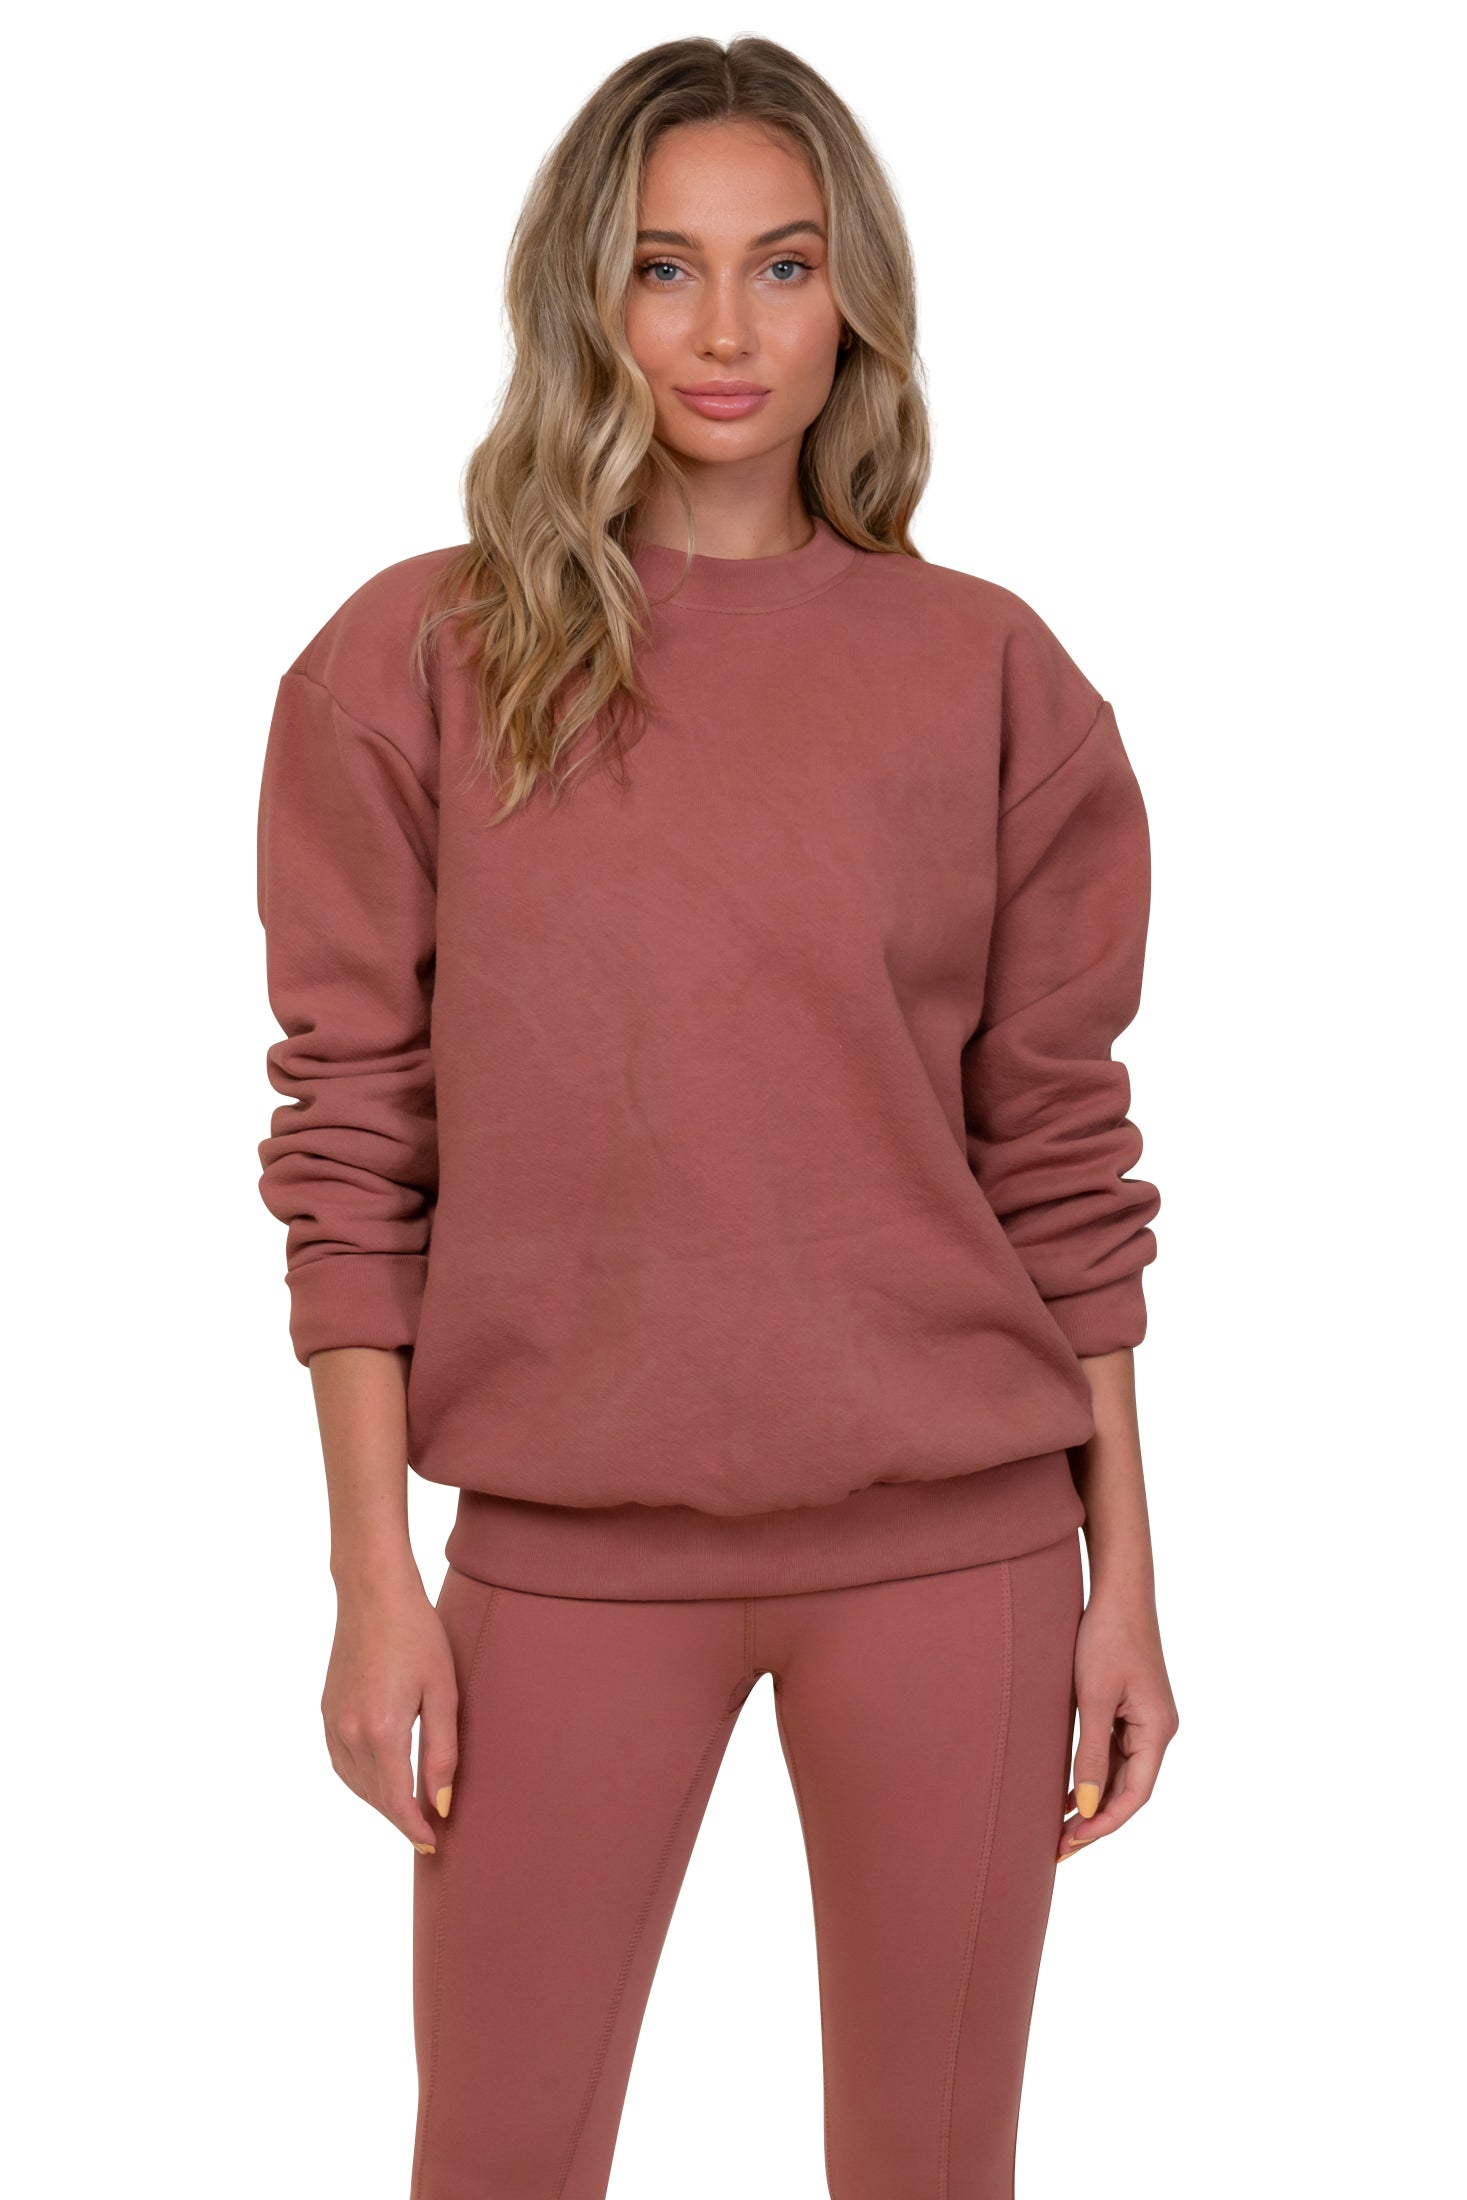 Terra Cotta Sweatshirt